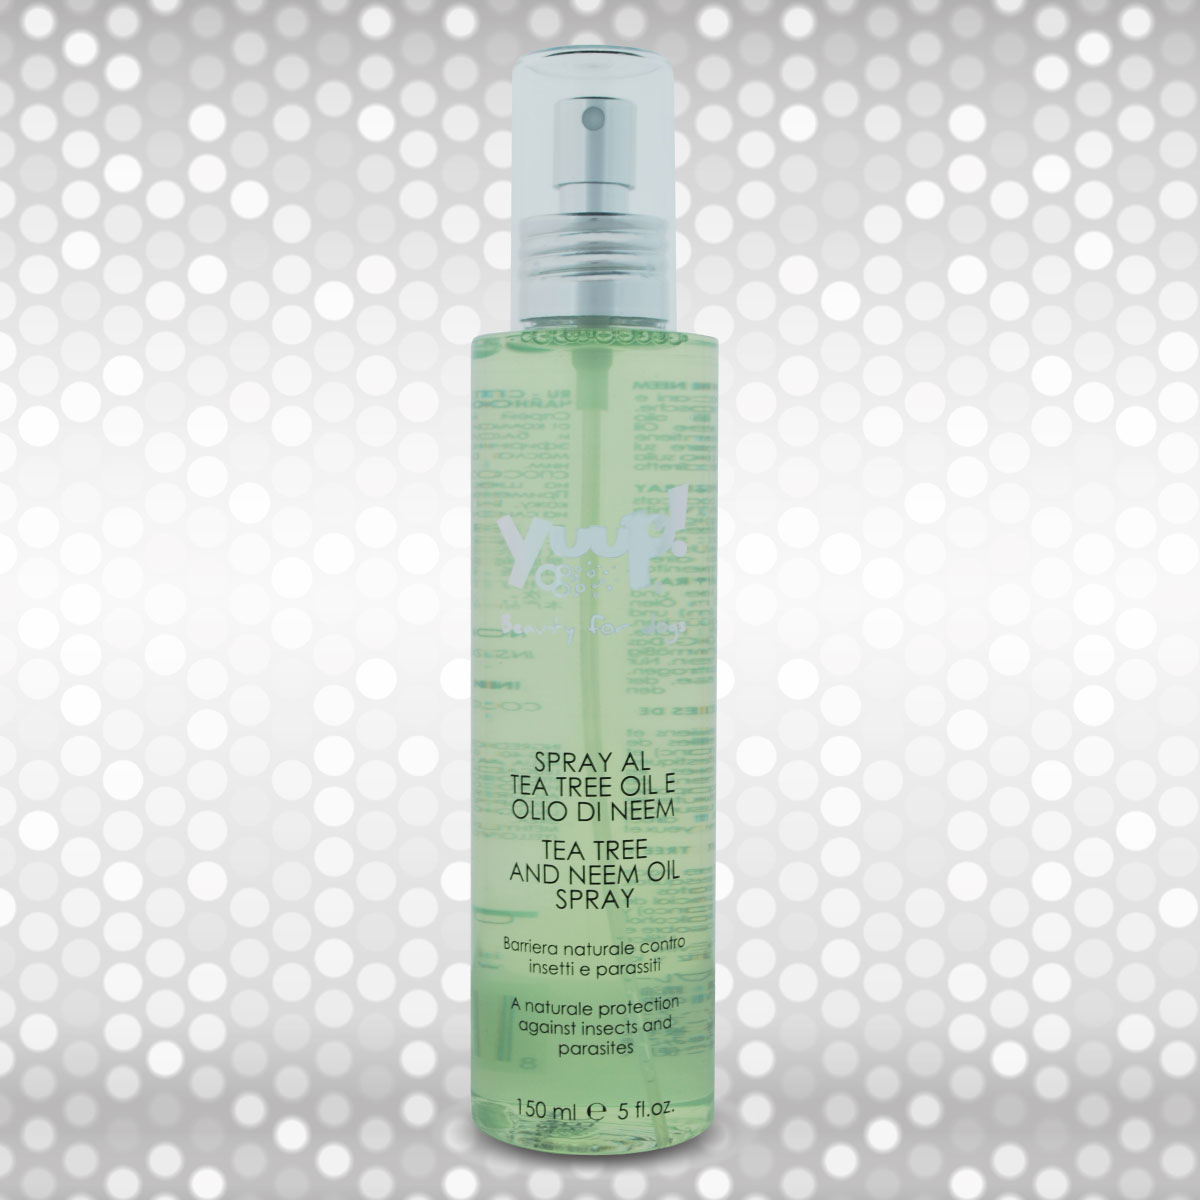 Yuup Tea Tree and Neem Oil Spray